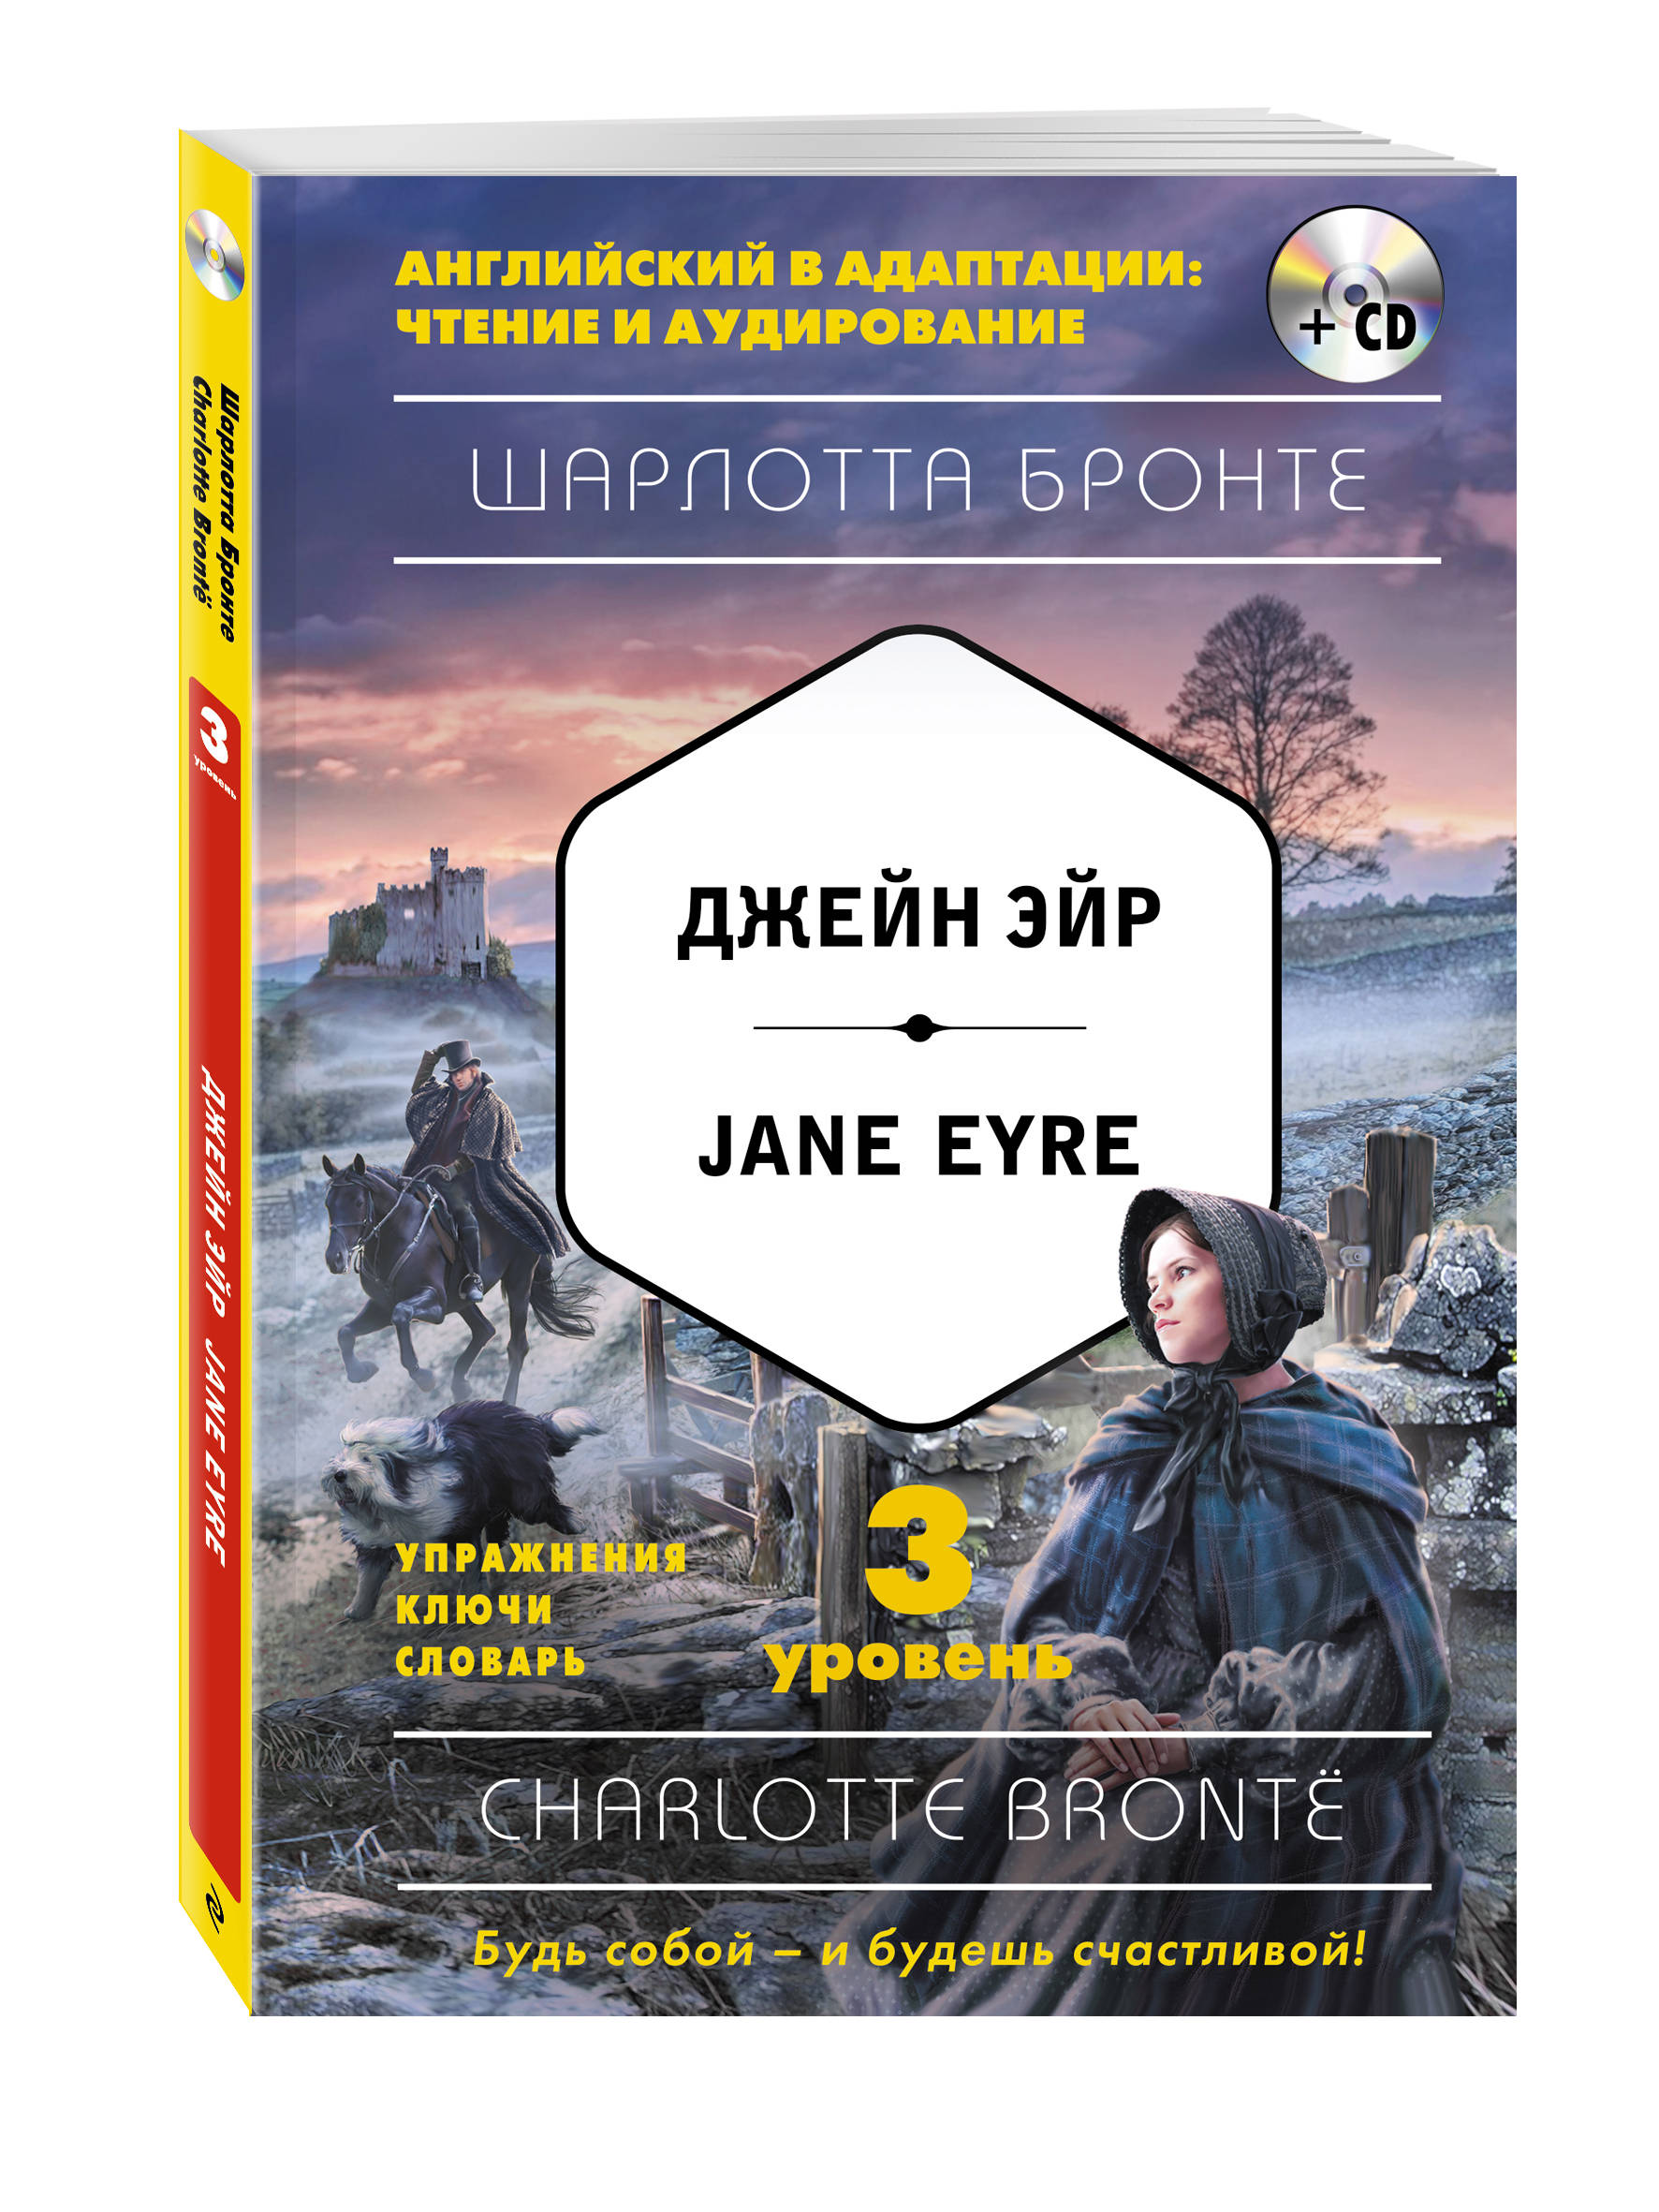 Бронте Ш. Джейн Эйр = Jane Eyre (+CD). 3-й уровень книги эксмо джейн эйр jane eyre cd 3 й уровень